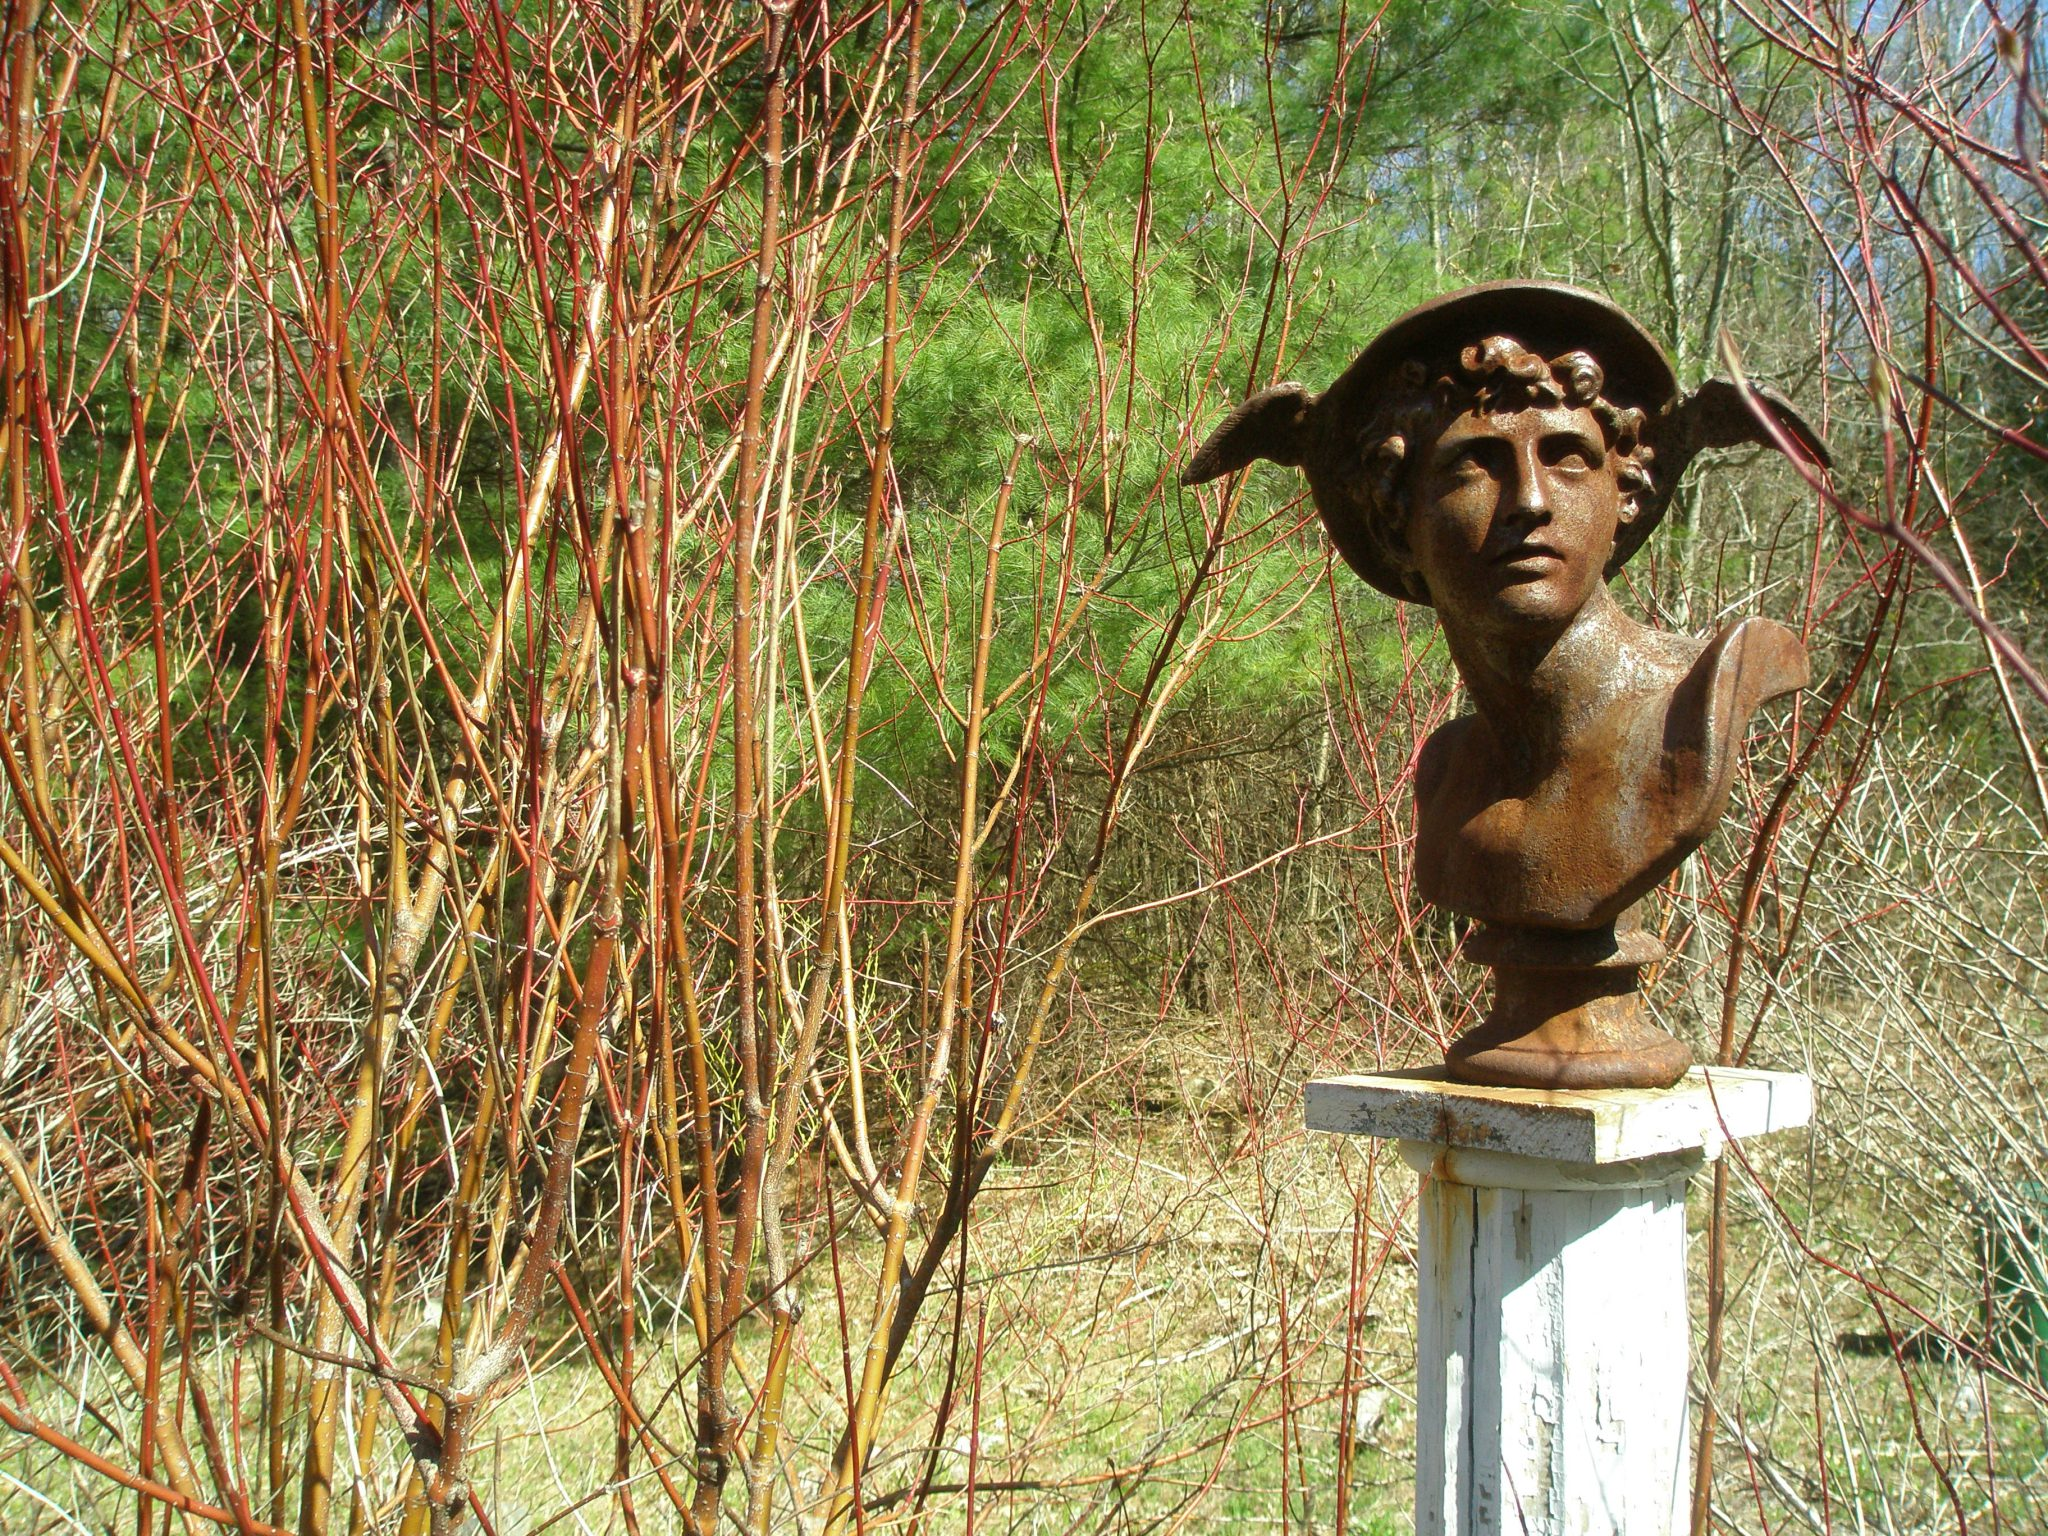 My All-Purpose, Backyard Deity. Hermes--protector and patron of travelers & poets--is the god of boundaries and transitions, message-carrier between the mortal and divine worlds. This is a tricky fellow, whose mercurial nature is never quite clear. He watches over me...but keeps me on my toes.